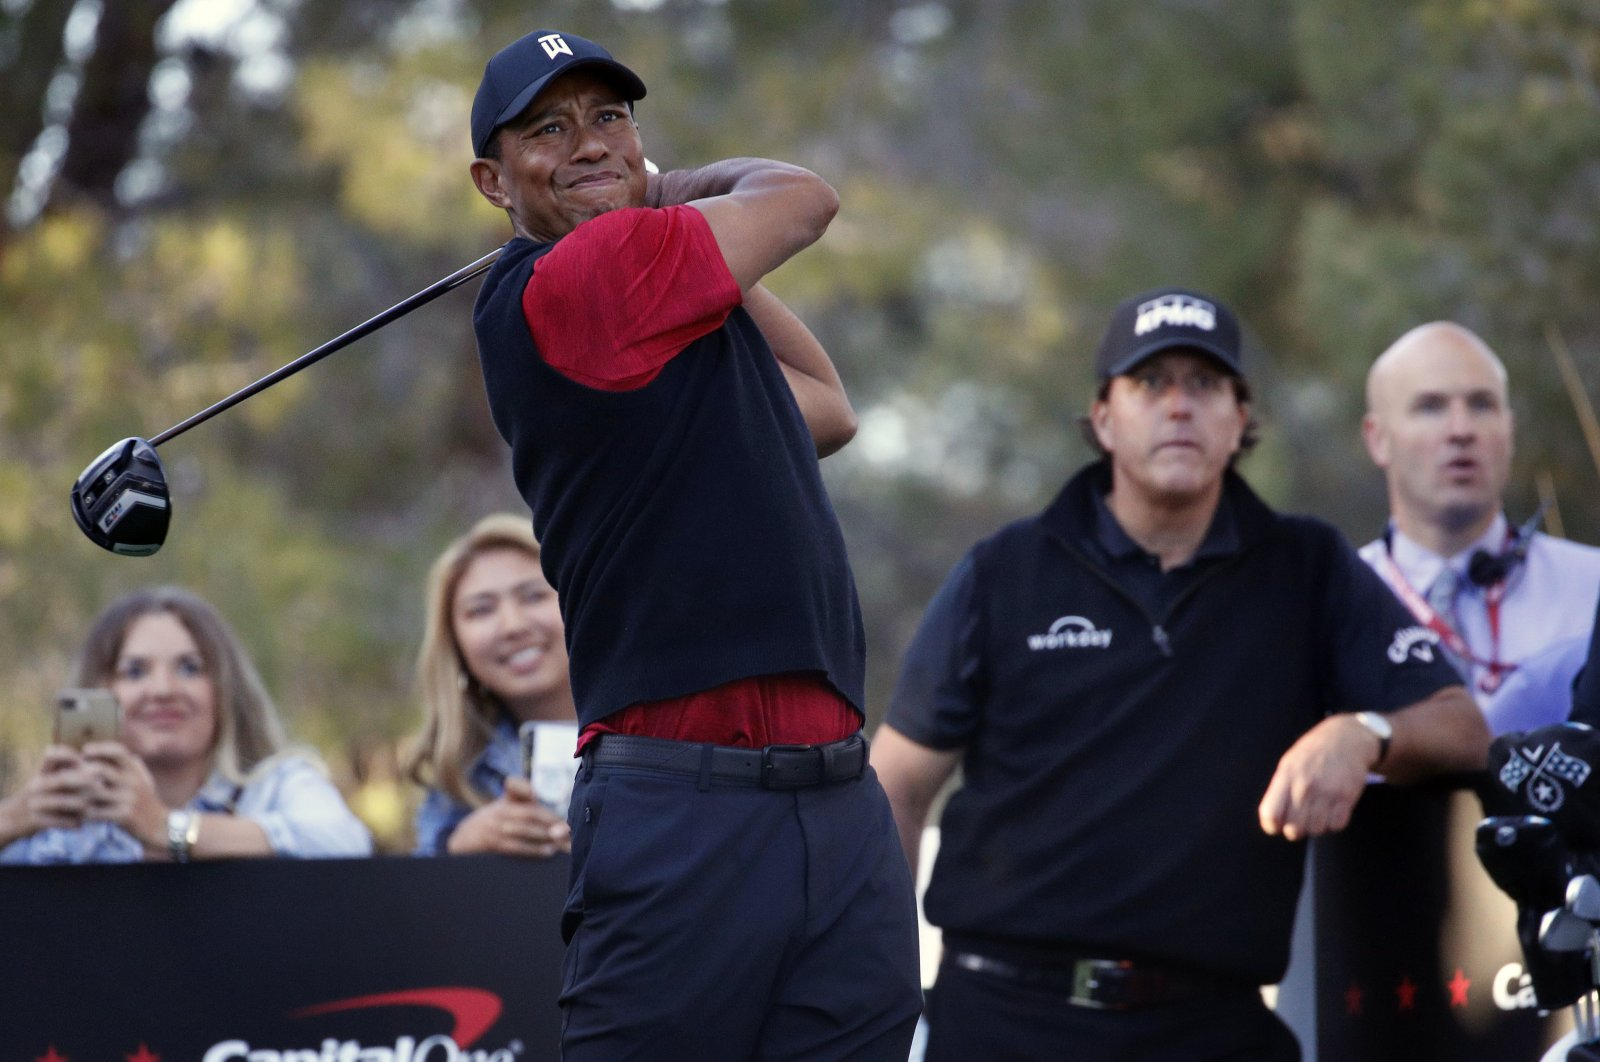 Tiger Woods tees off as Phil Mickelson watches at Shadow Creek golf course, Las Vegas, Nov. 23, 2018. (AP Photo)